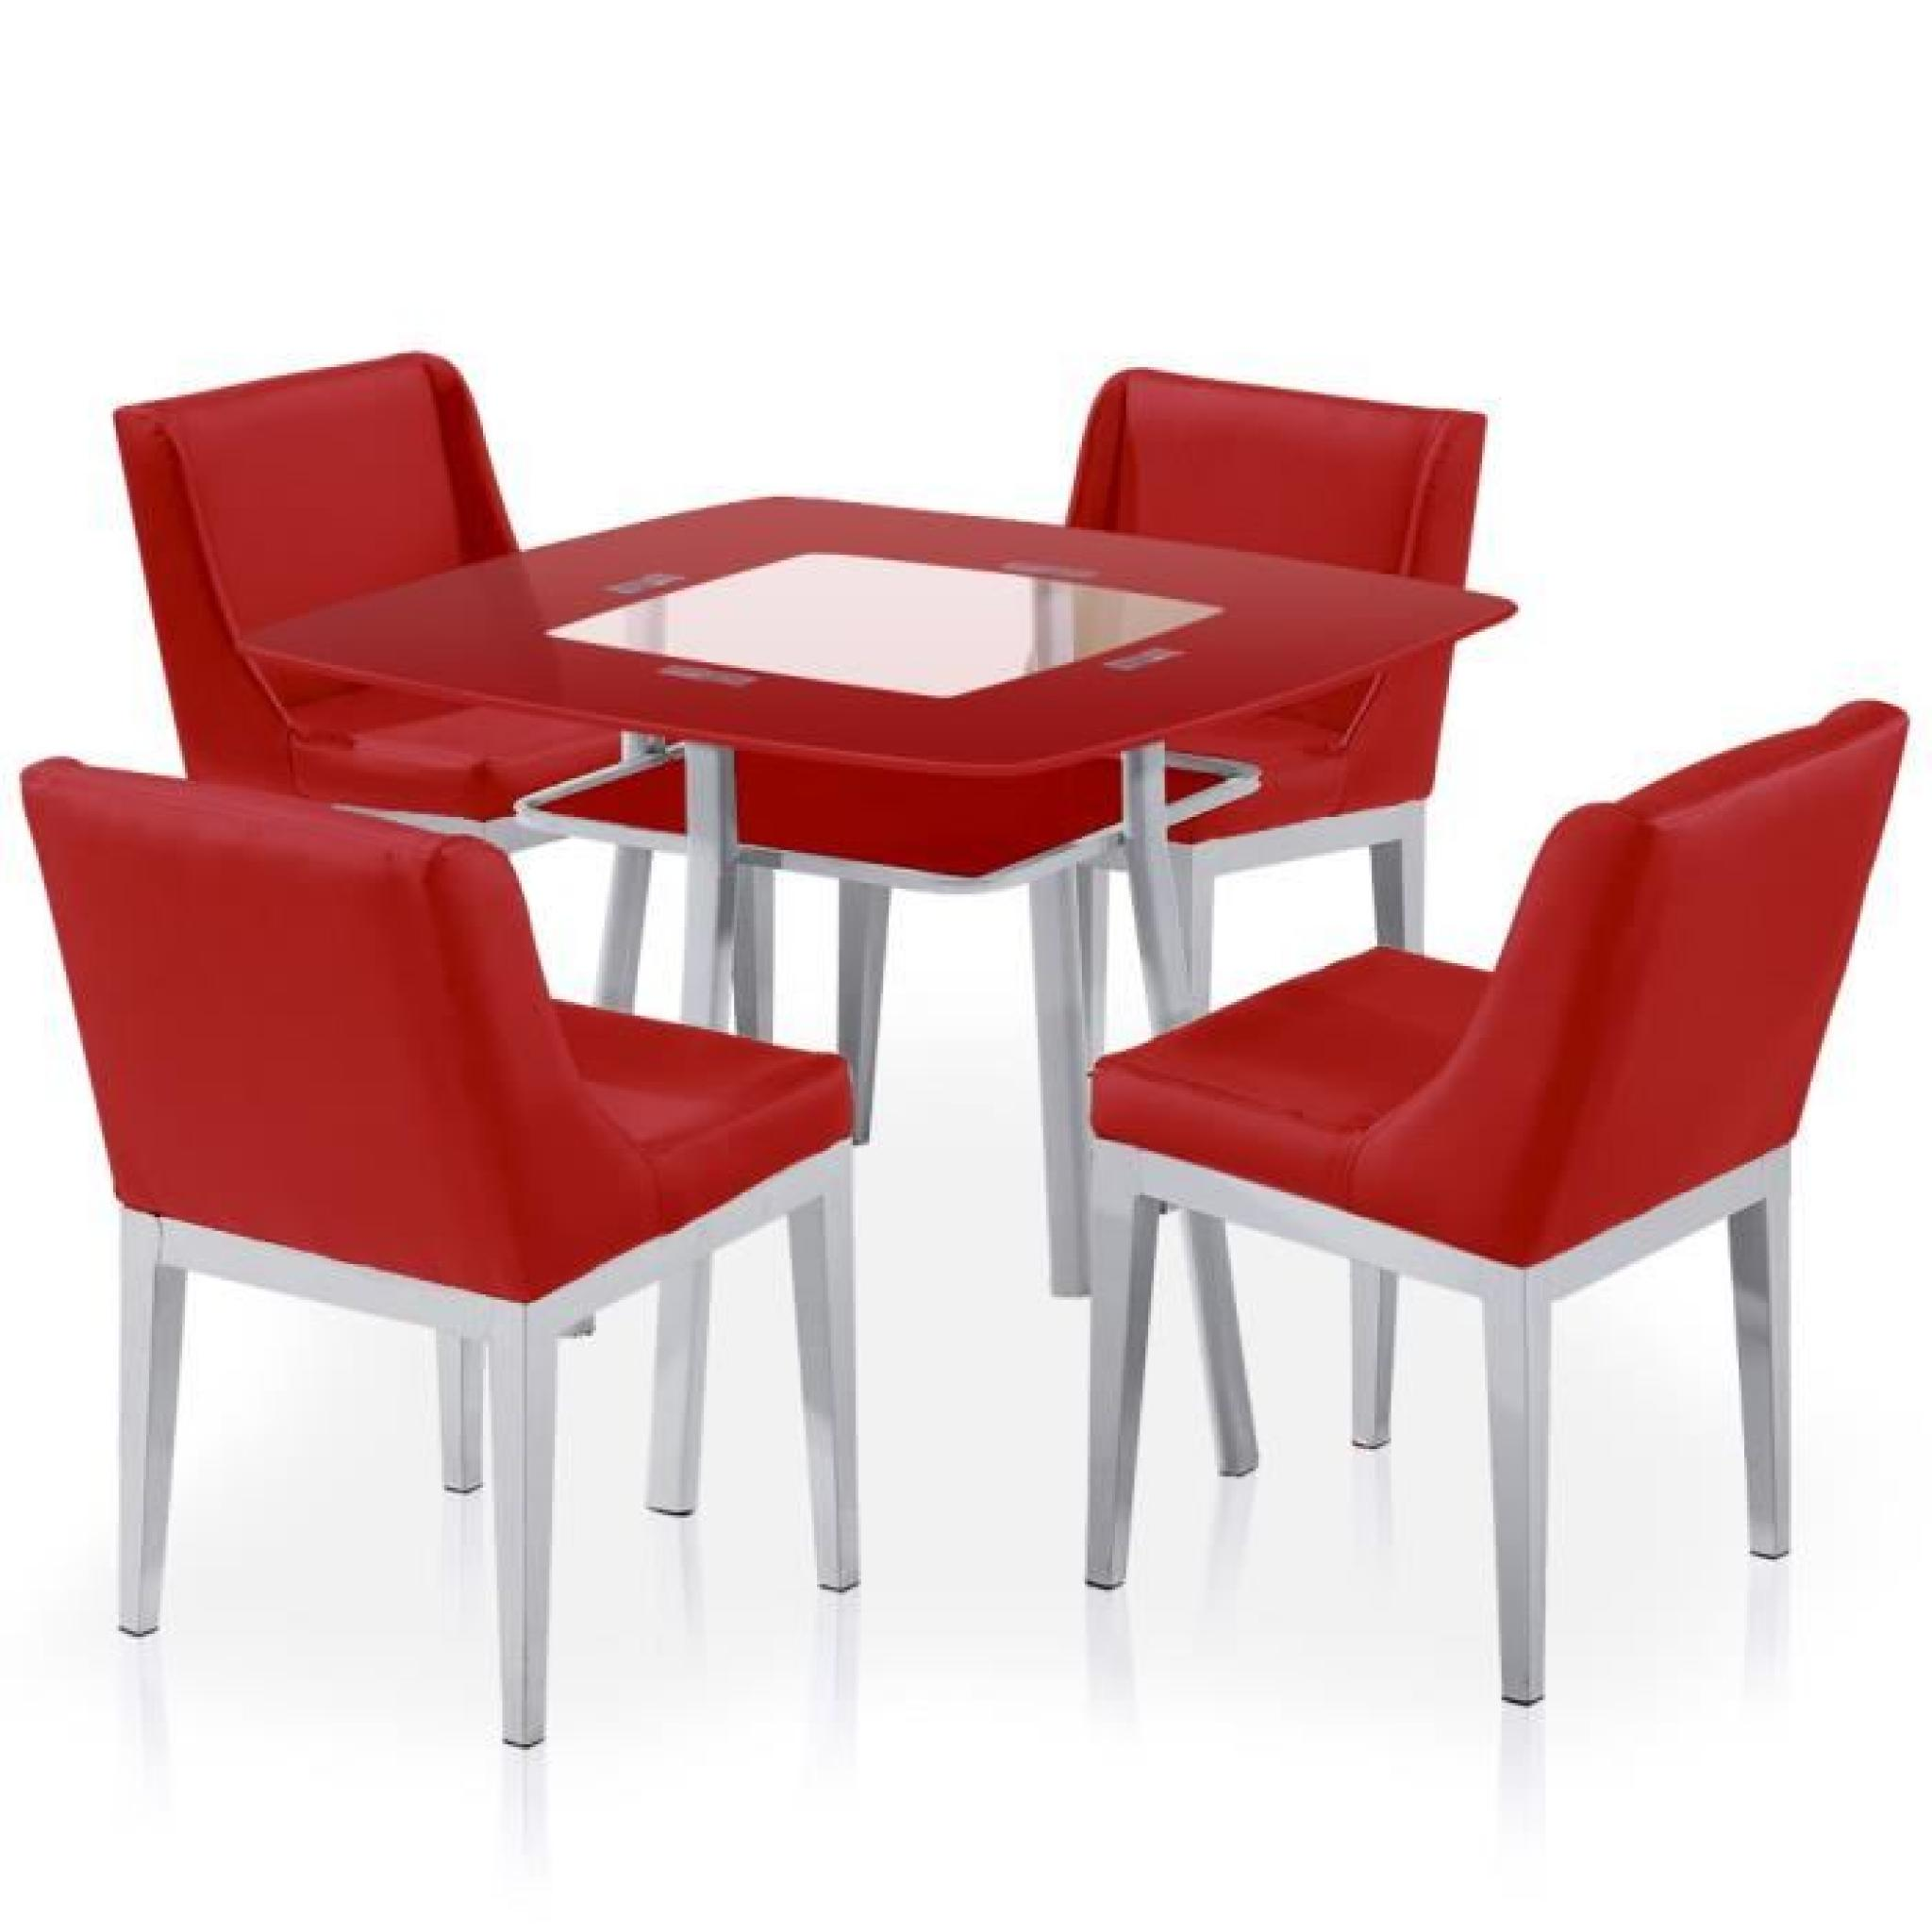 Achat Table Et Chaises Table Et Chaises Carrie Rouge Achat Vente Table Salle A